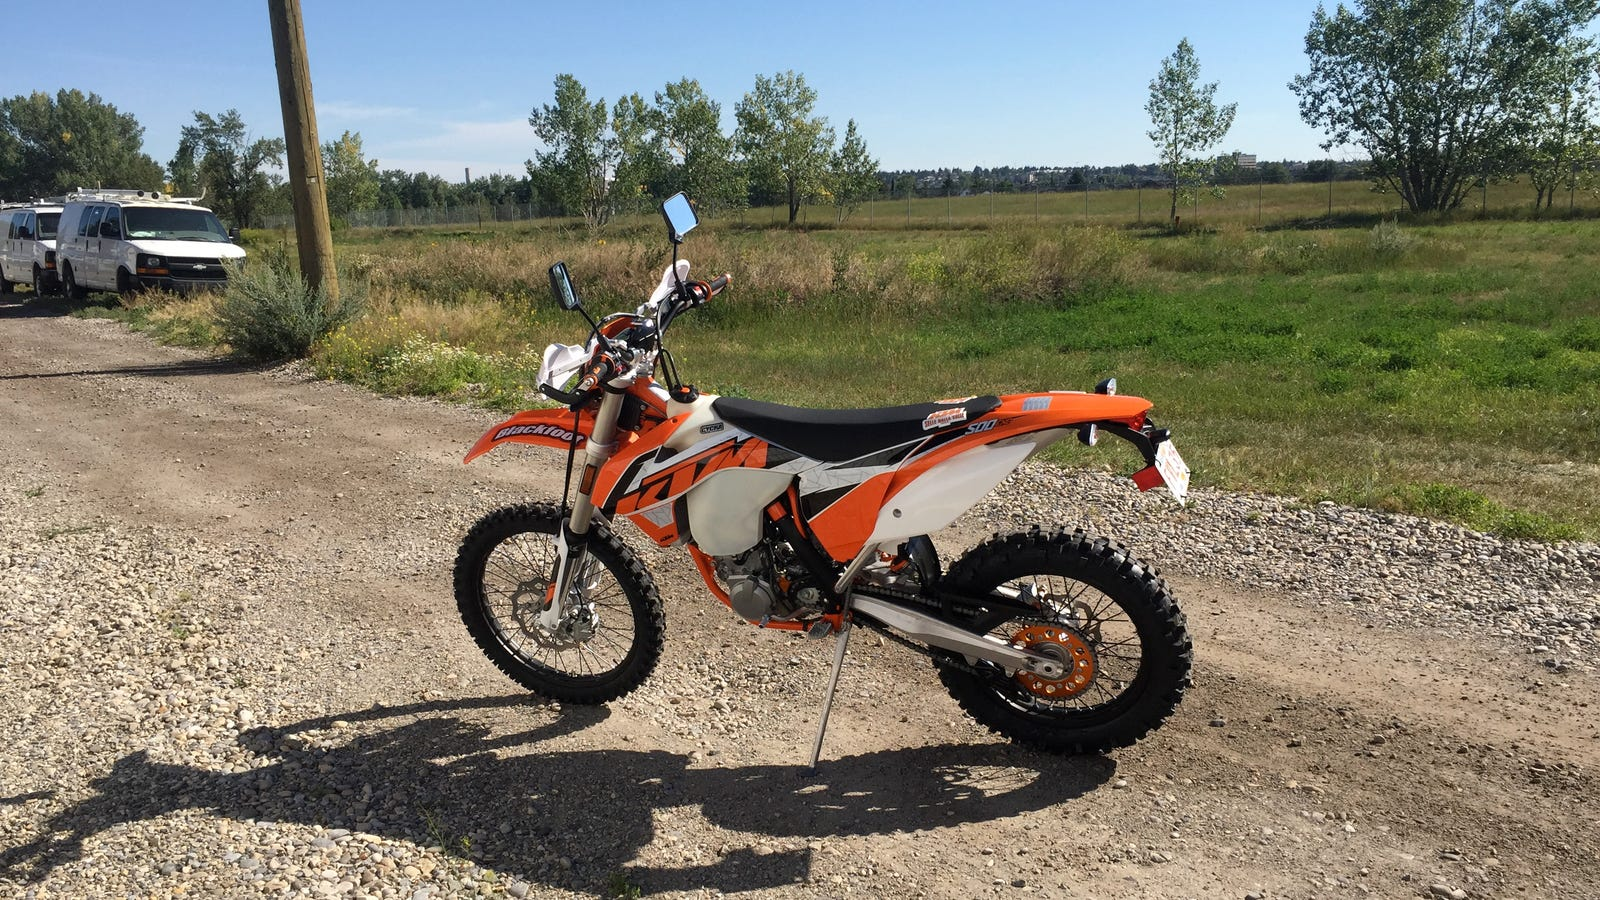 The Ktm 500 Exc Why You Want A Road Legal Dirt Bike Carburetor Diagram Drz 400 Carb Upgrade